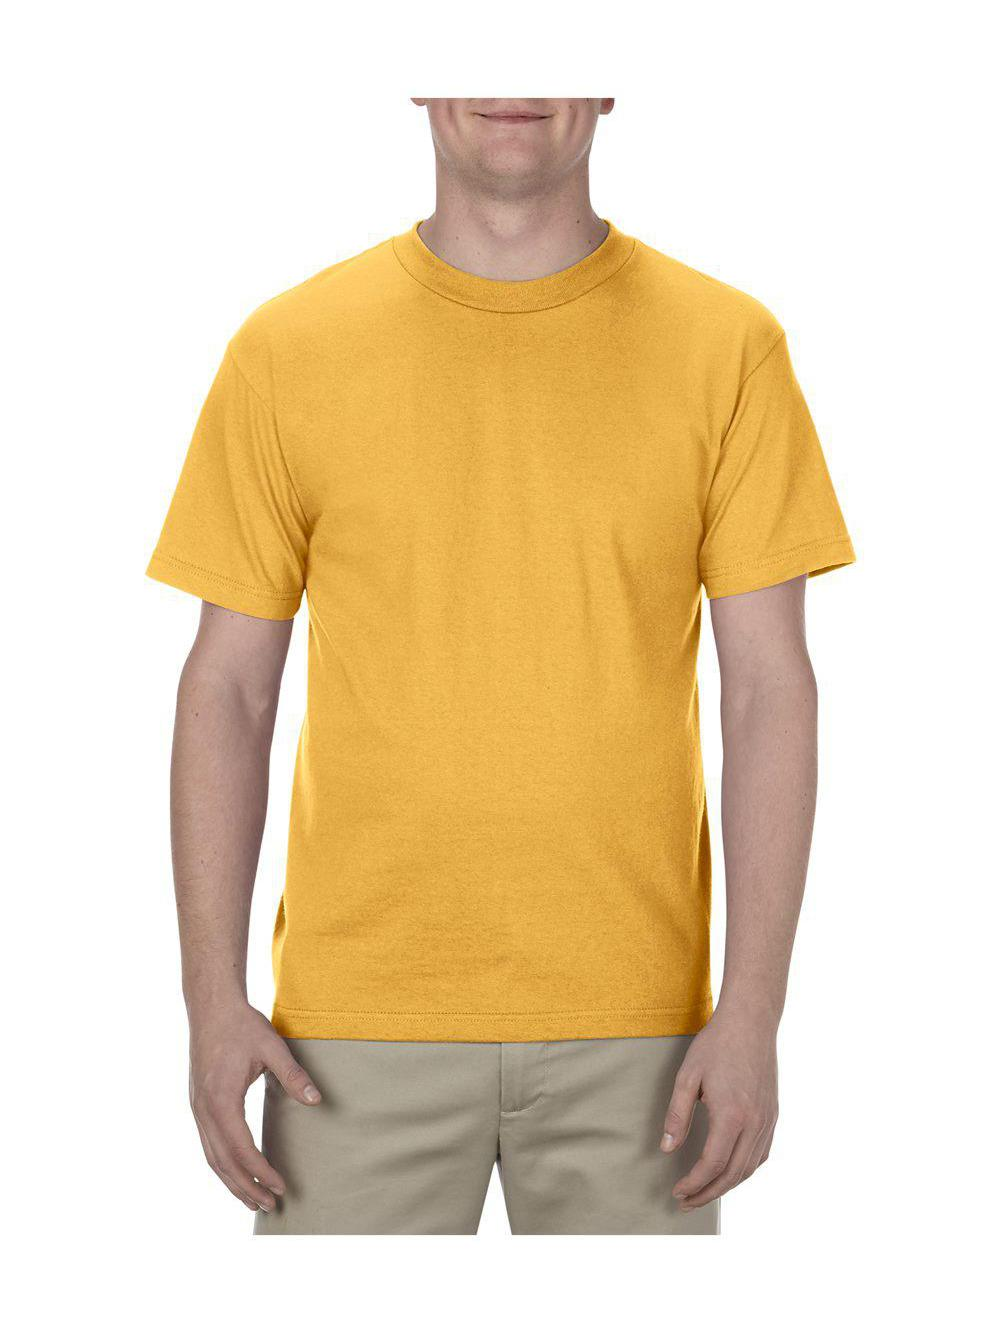 ALSTYLE-Classic-T-Shirt-1301 thumbnail 42